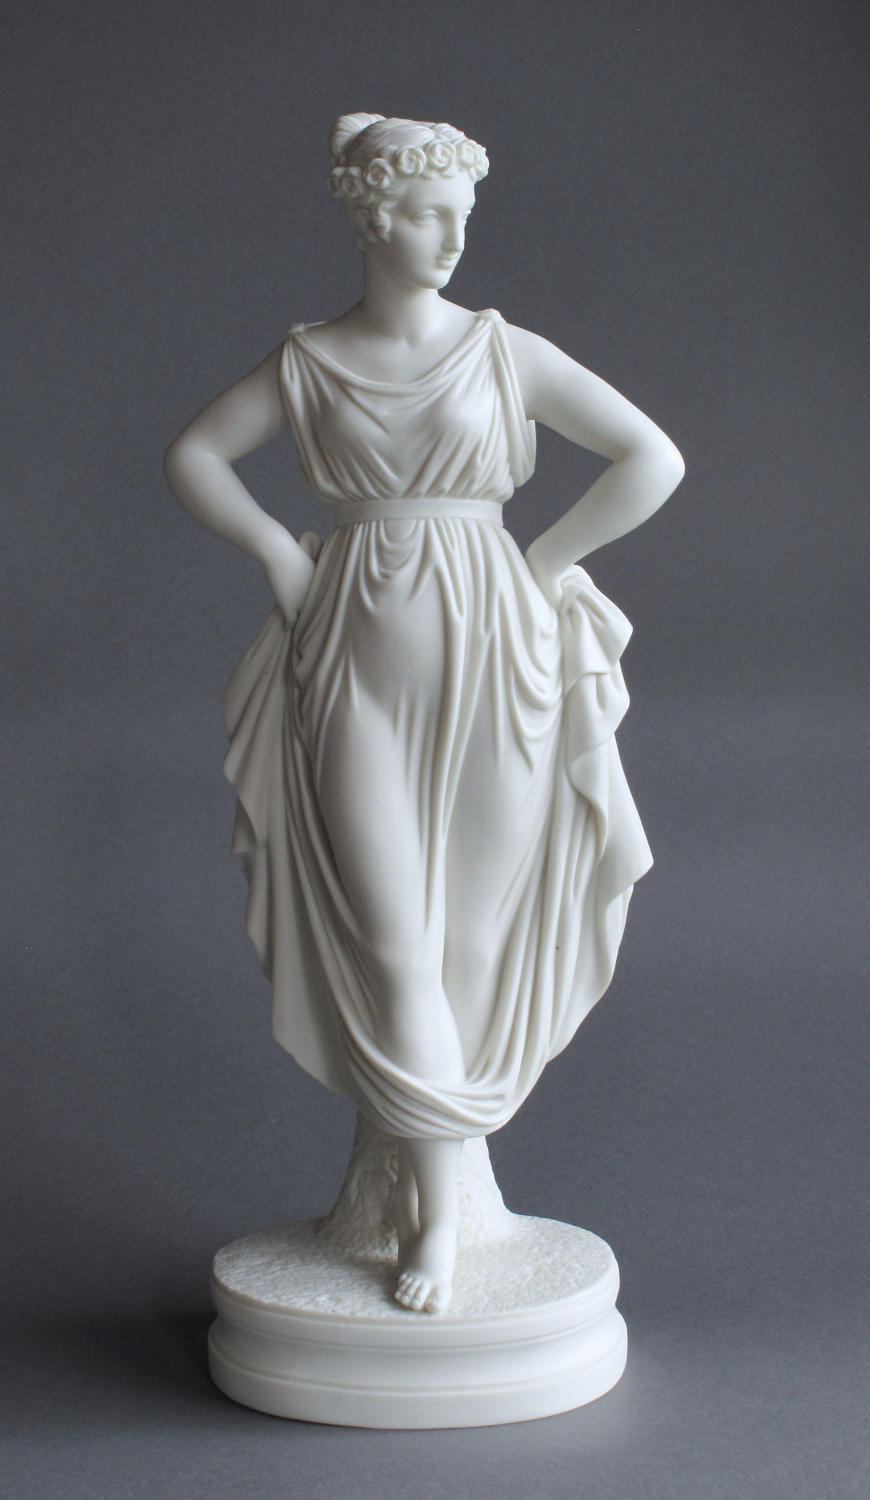 A Parian figure of the Dancing Girl from Canova